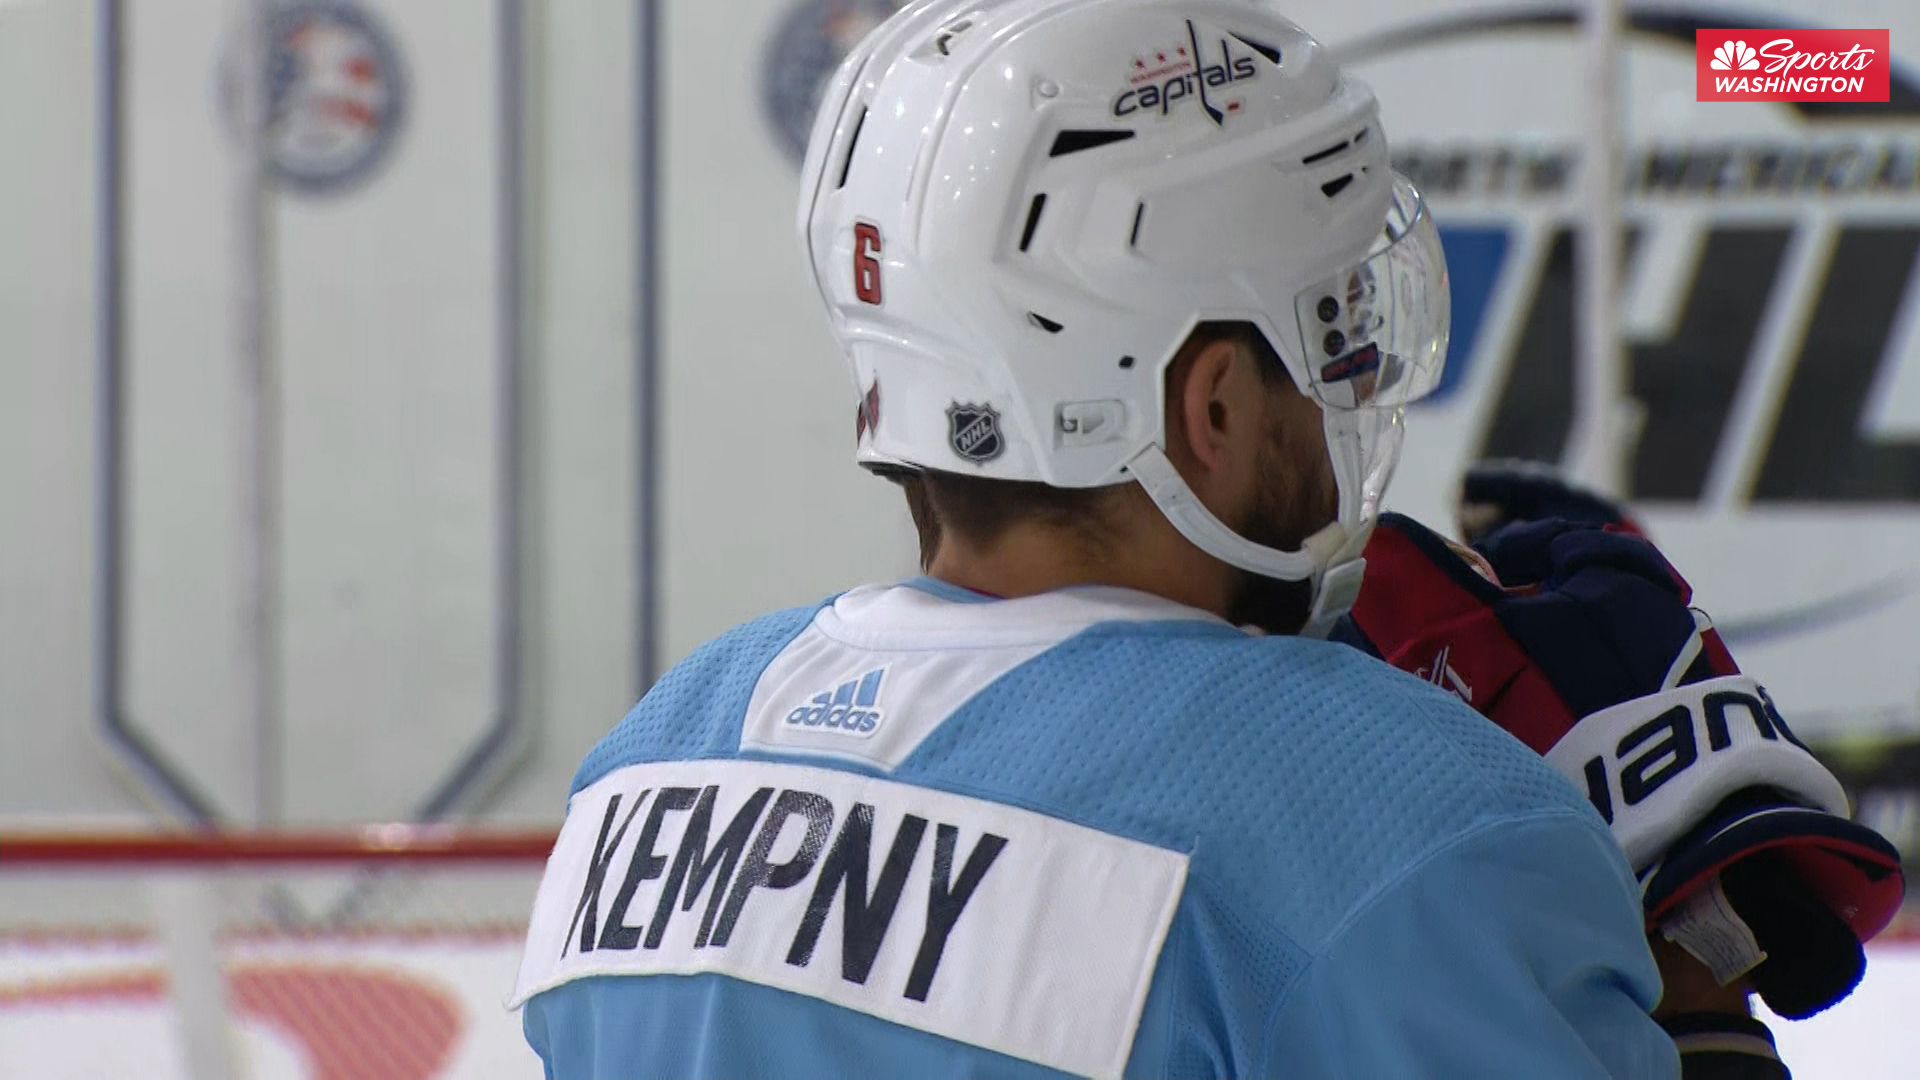 The sights and sounds from the Washington Capitals media day